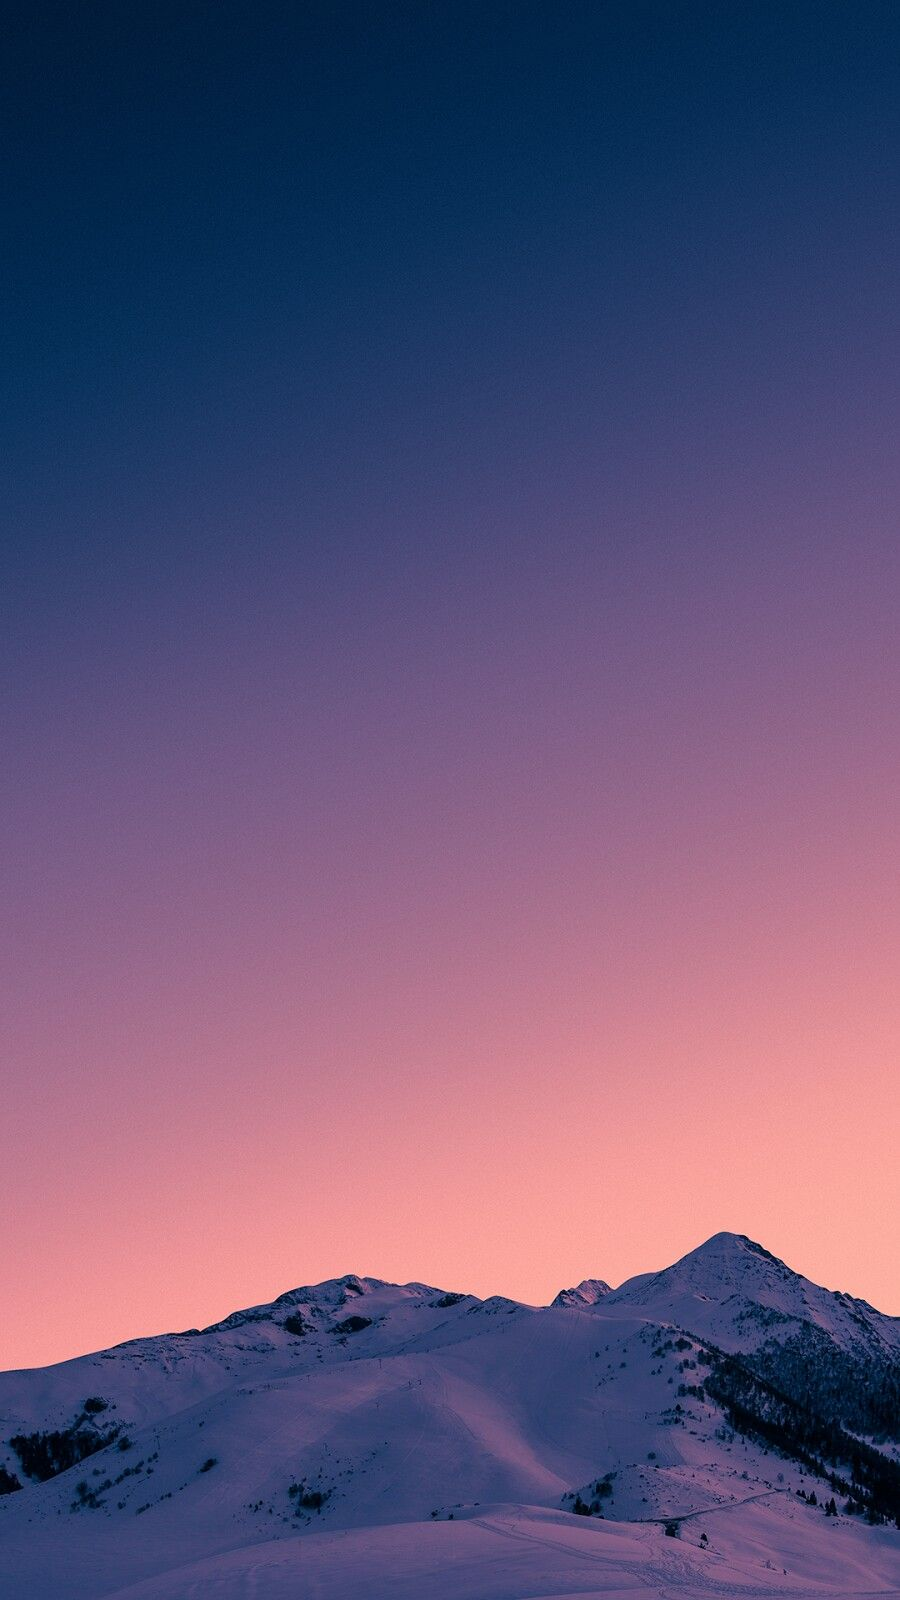 𝒑𝒊𝒏𝒕𝒆𝒓𝒆𝒔𝒕 𝒏𝒐𝒉𝒓𝒔𝒉𝒊𝒅𝒐. Phone wallpaper, Apple wallpaper